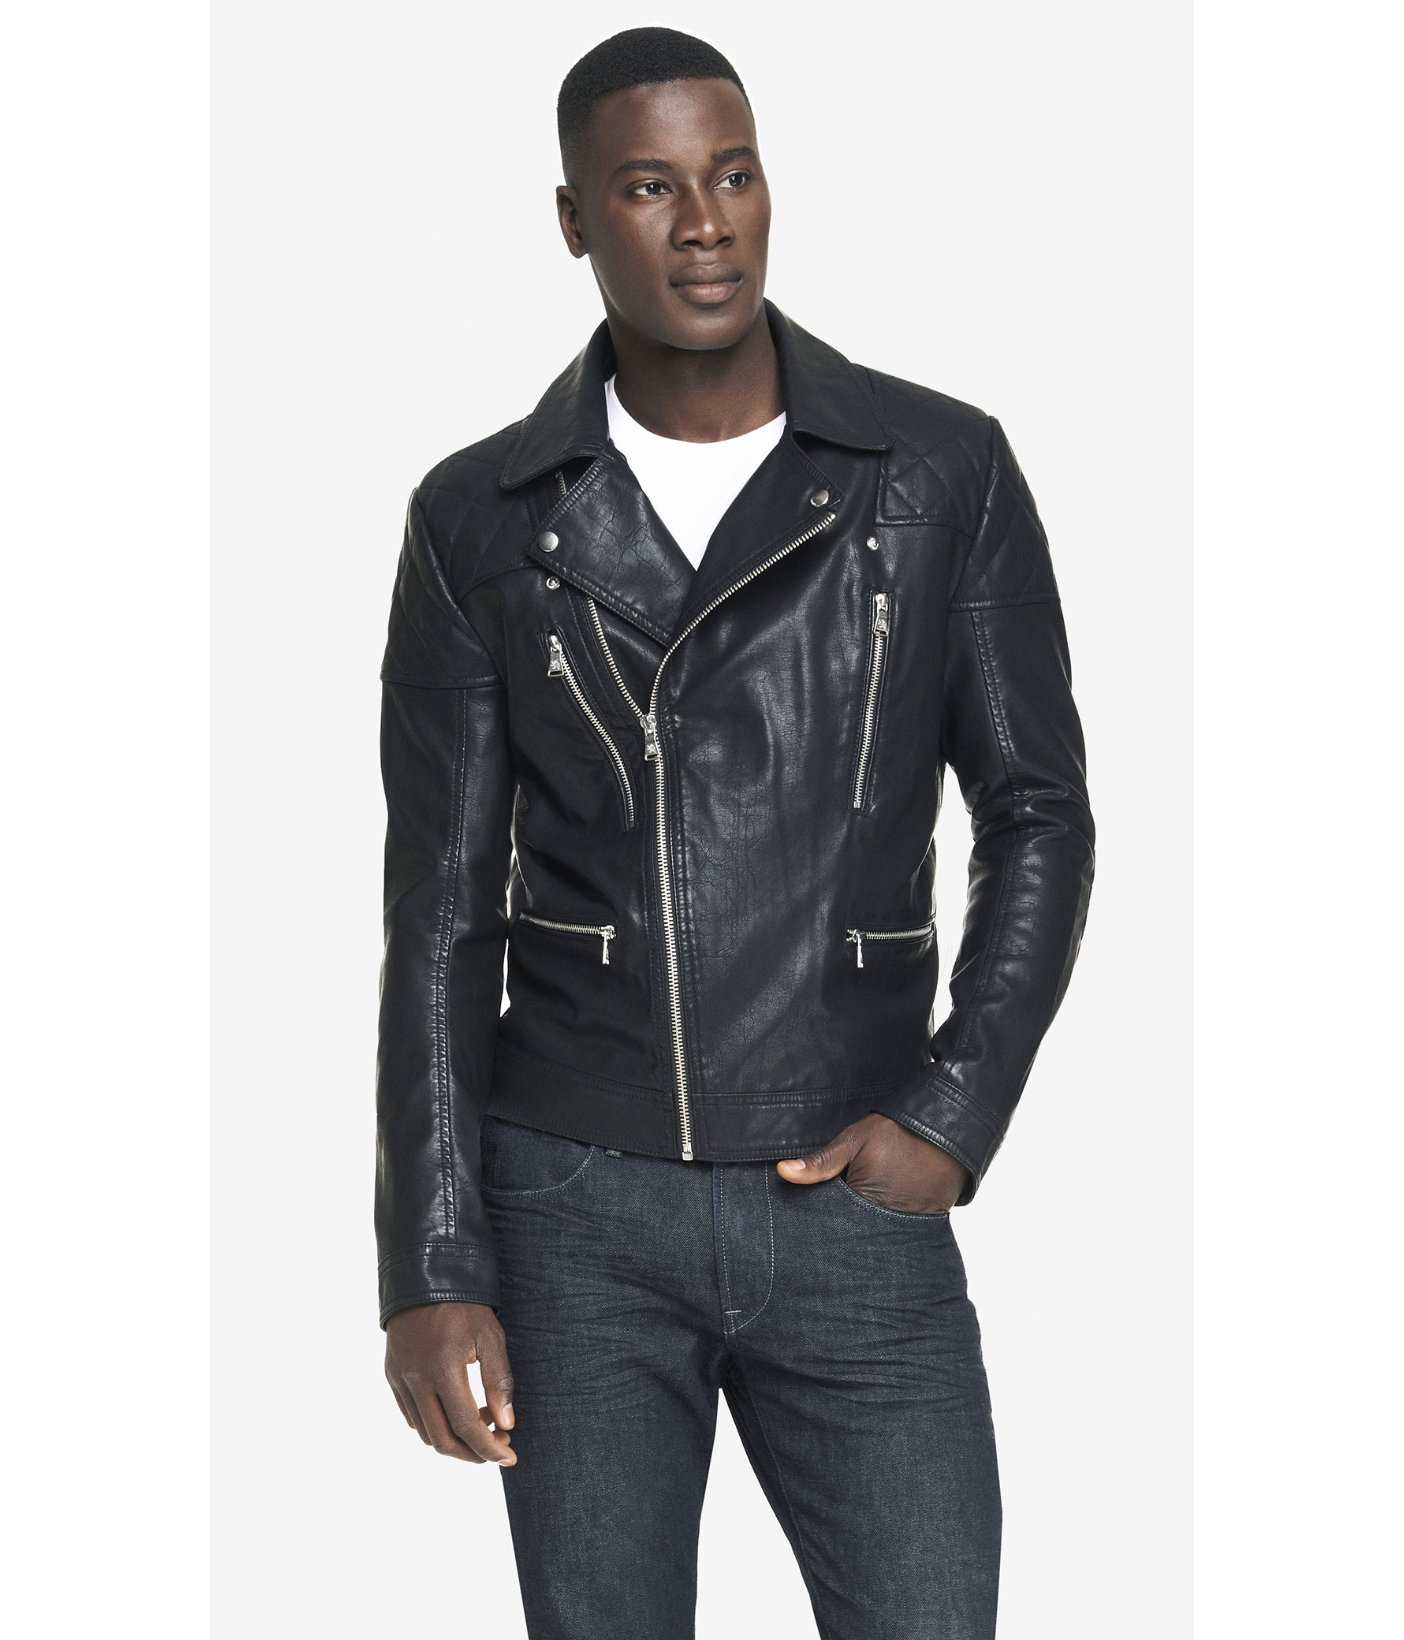 Shop Men's and Women's Leather Jackets at ZippiLeather. Customize Your Own Jackets. Made to Measure. Best Fit. Great Price. % pure leather. FREE SHIPPING WORLDWIDE. Custom made jackets will last lifetime,looks amazing and give clean comfortable fit. Find unique motorcycle jackets having best fashion pricing at ZippiLeather.